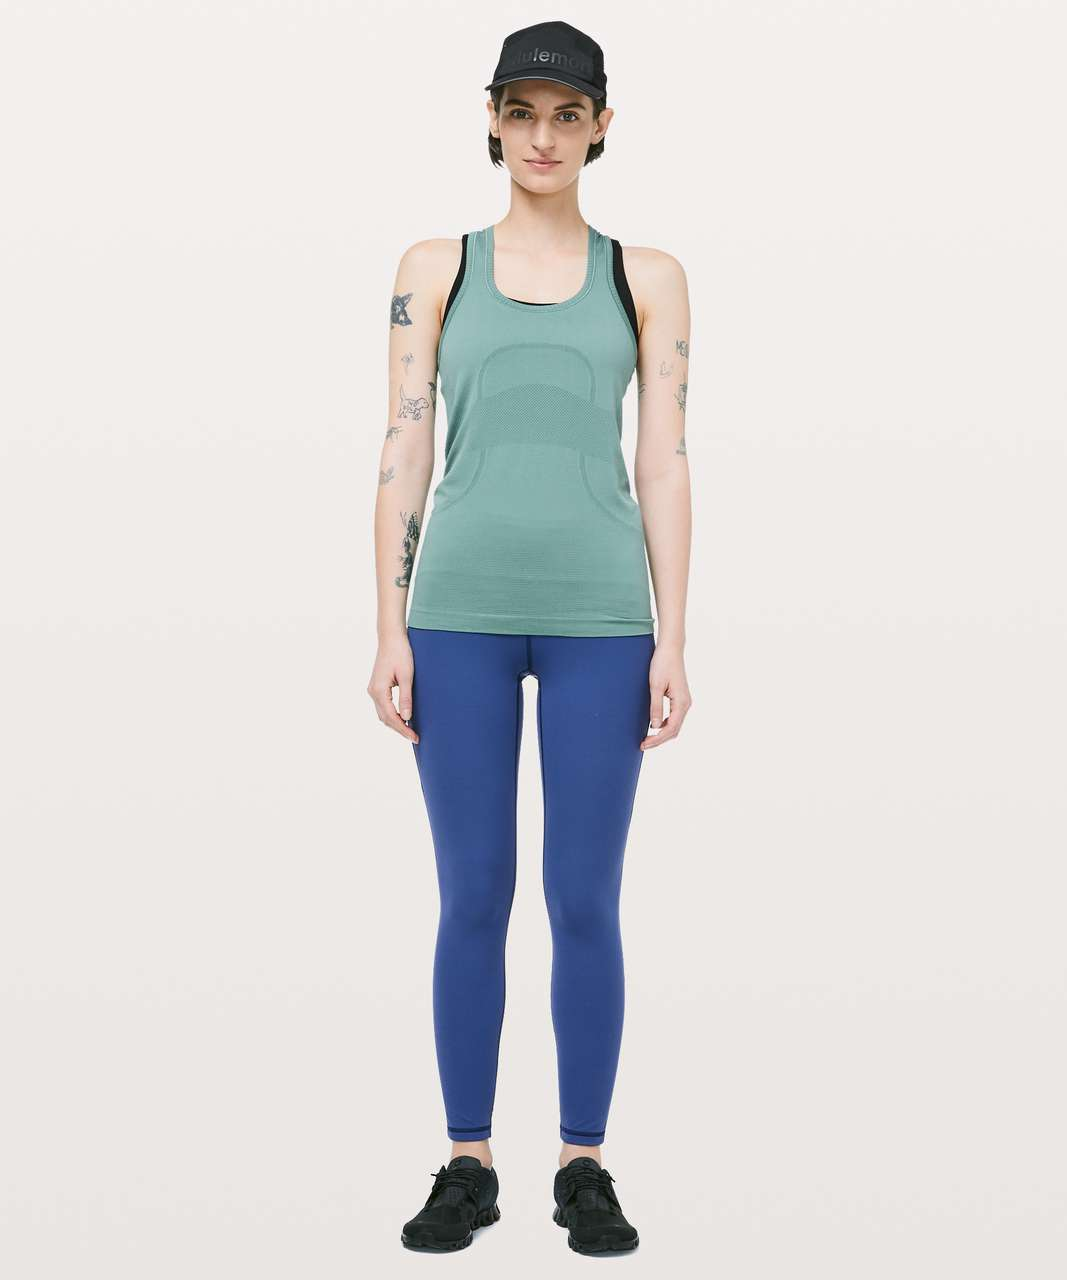 Lululemon Swiftly Tech Racerback - Frosted Pine / Frosted Pine